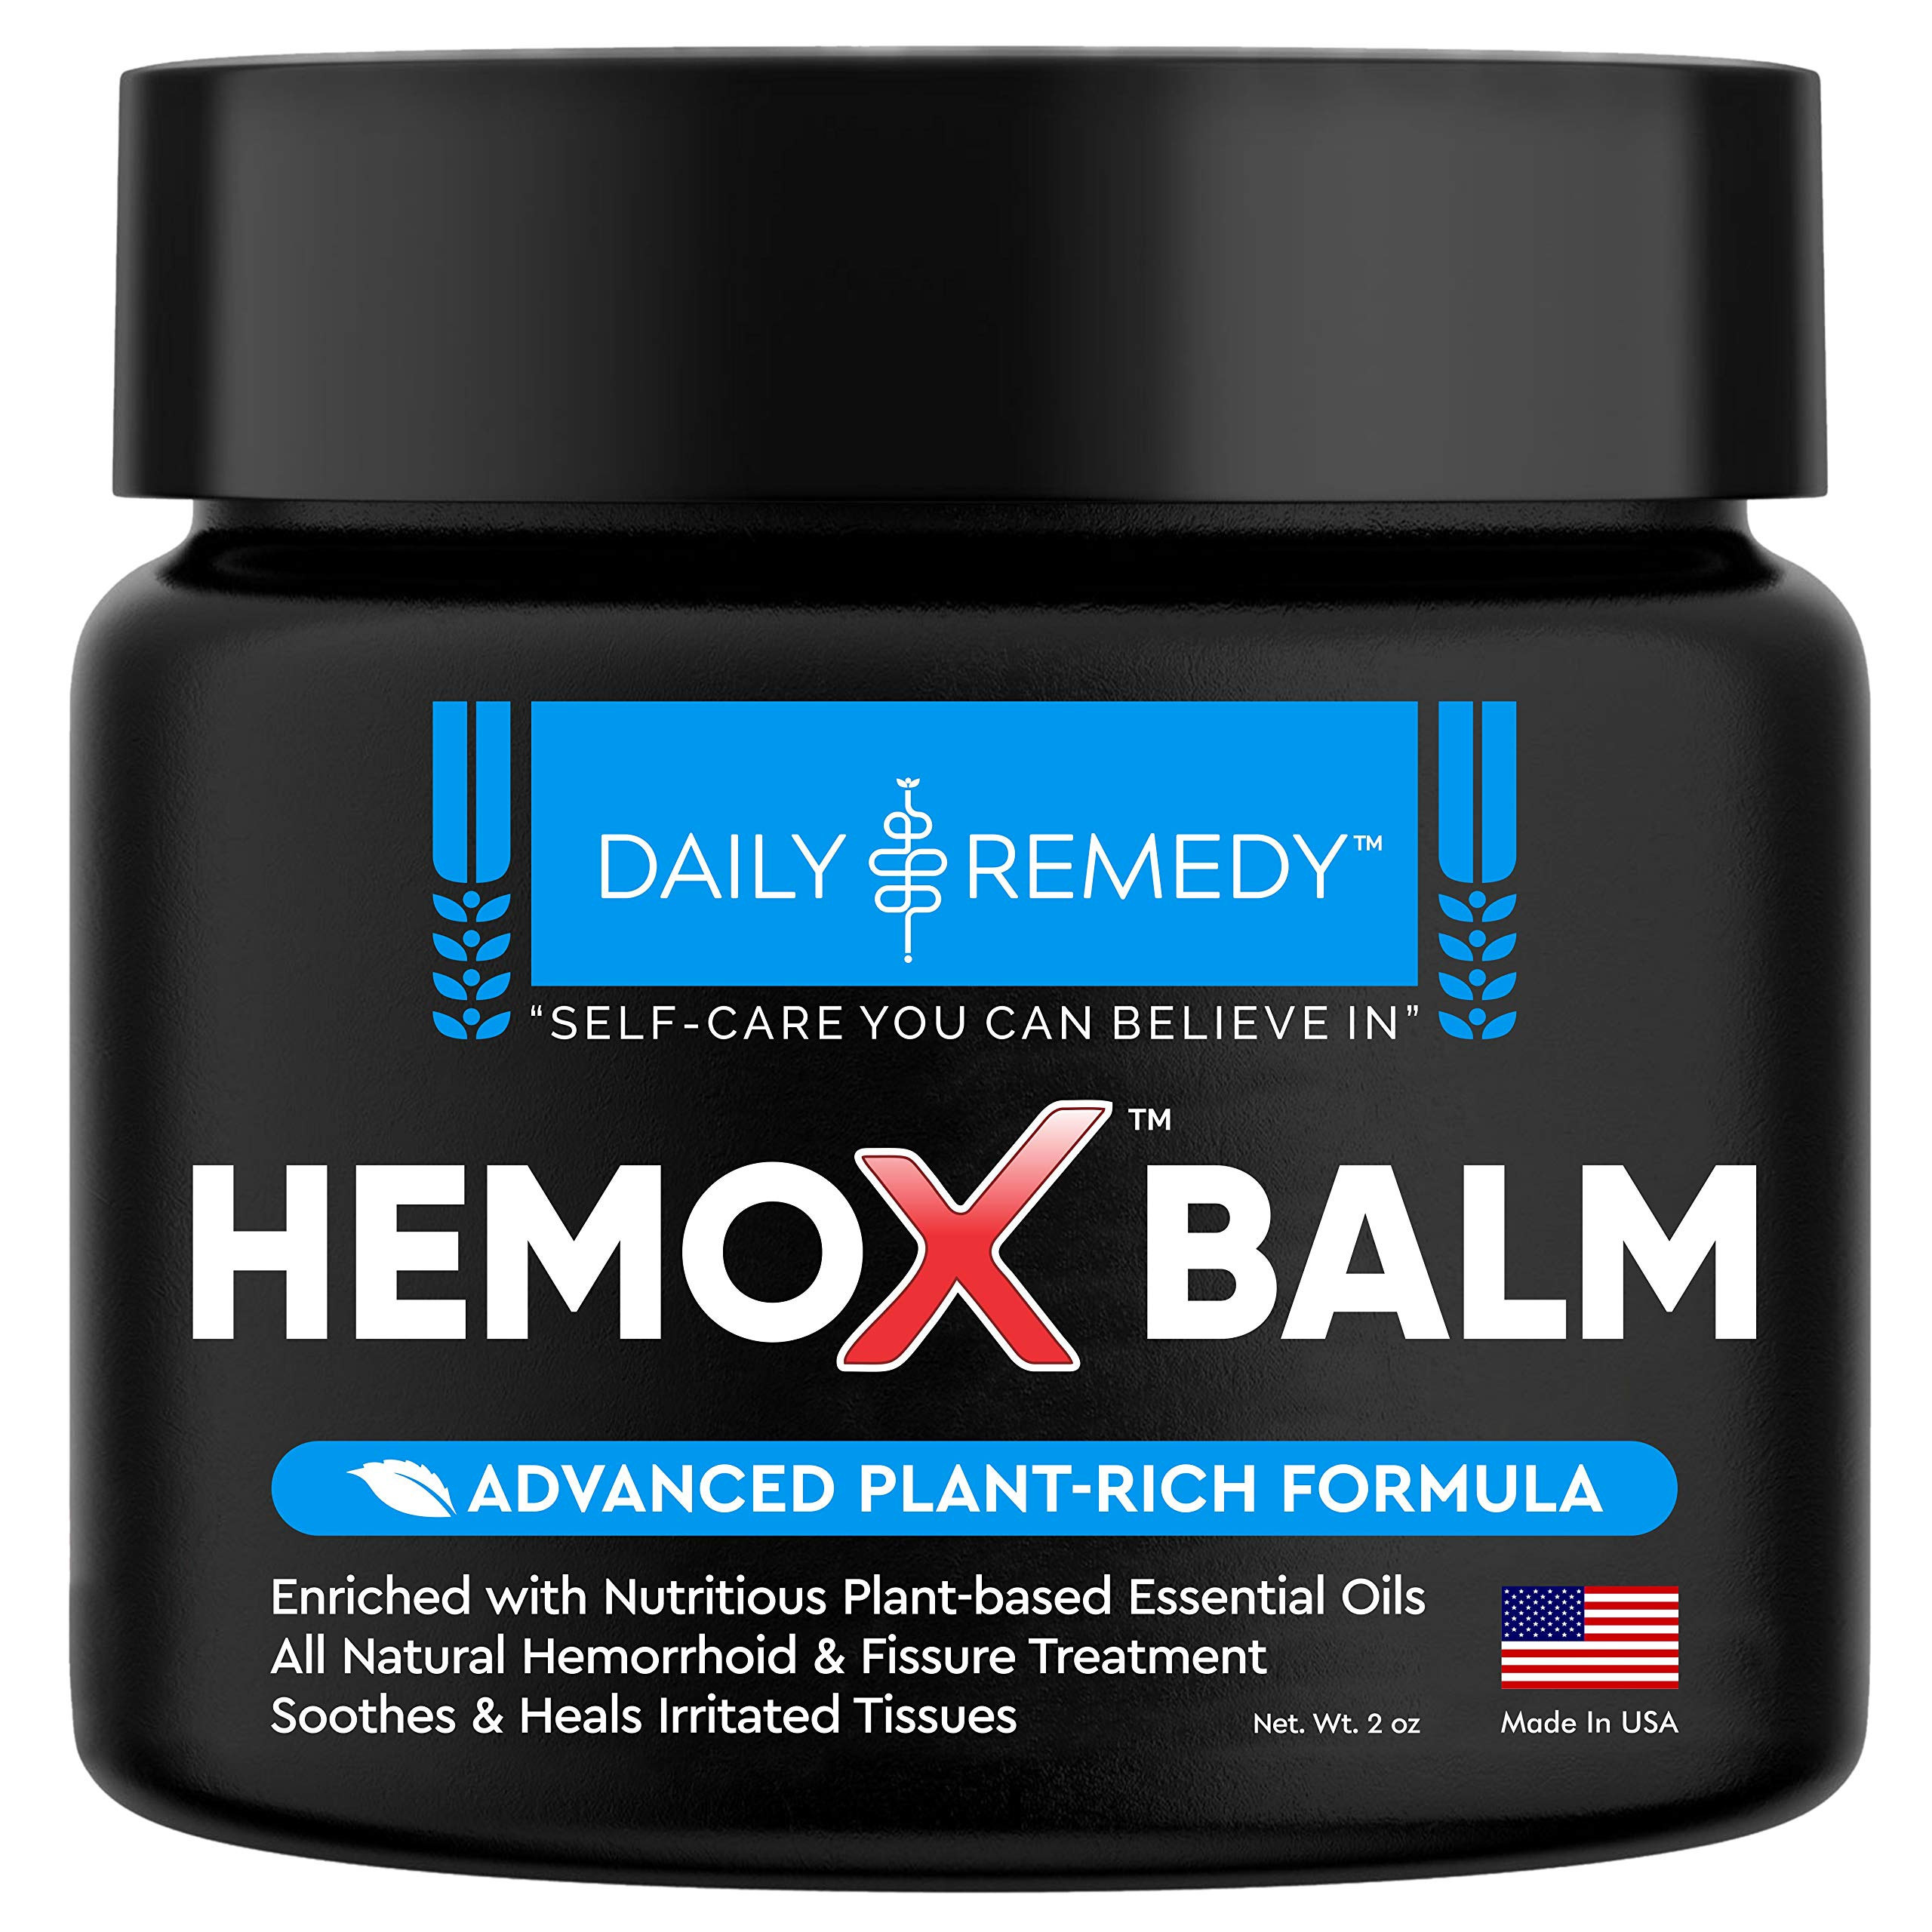 Daily Remedy HemoX Hemorrhoid & Anel Fissure Balm- All Natural Hemmoroid Treatment Symptom Relief Cream - Fast-Acting Organic-Based Ointment for Hemroid Burning, Itching, Pain & Swelling- Made in USA